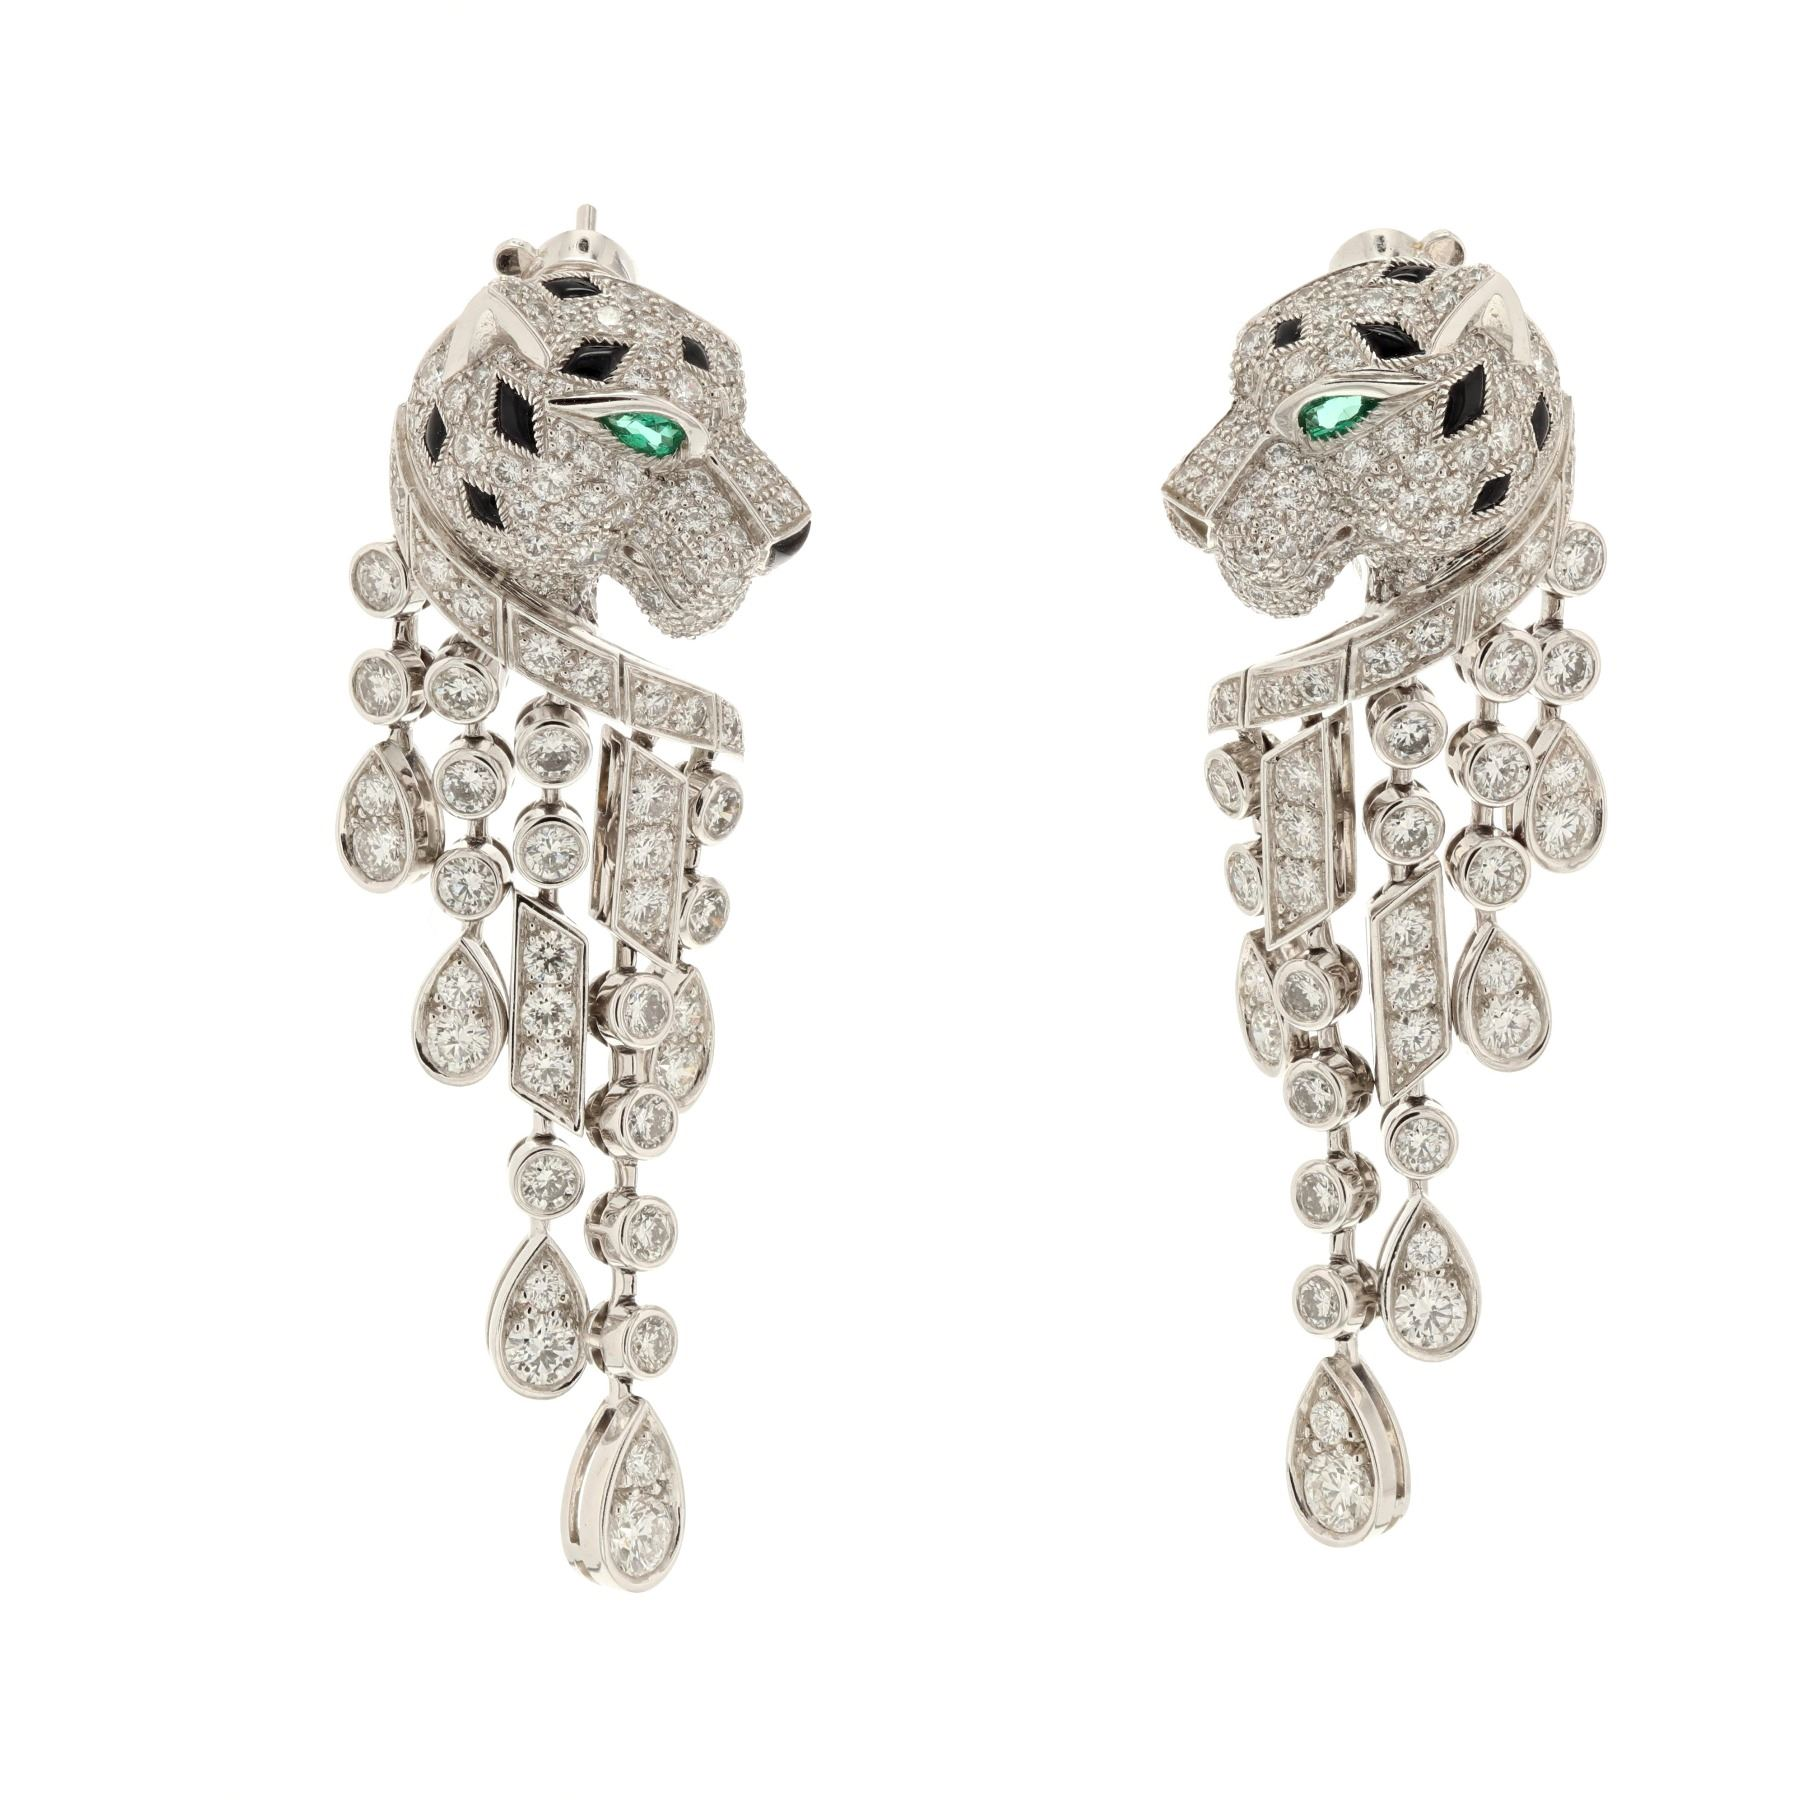 Earrings 1 Pair Platinum Cartier Panthere Set With 310 Round Diamonds Rox 5 63 Car